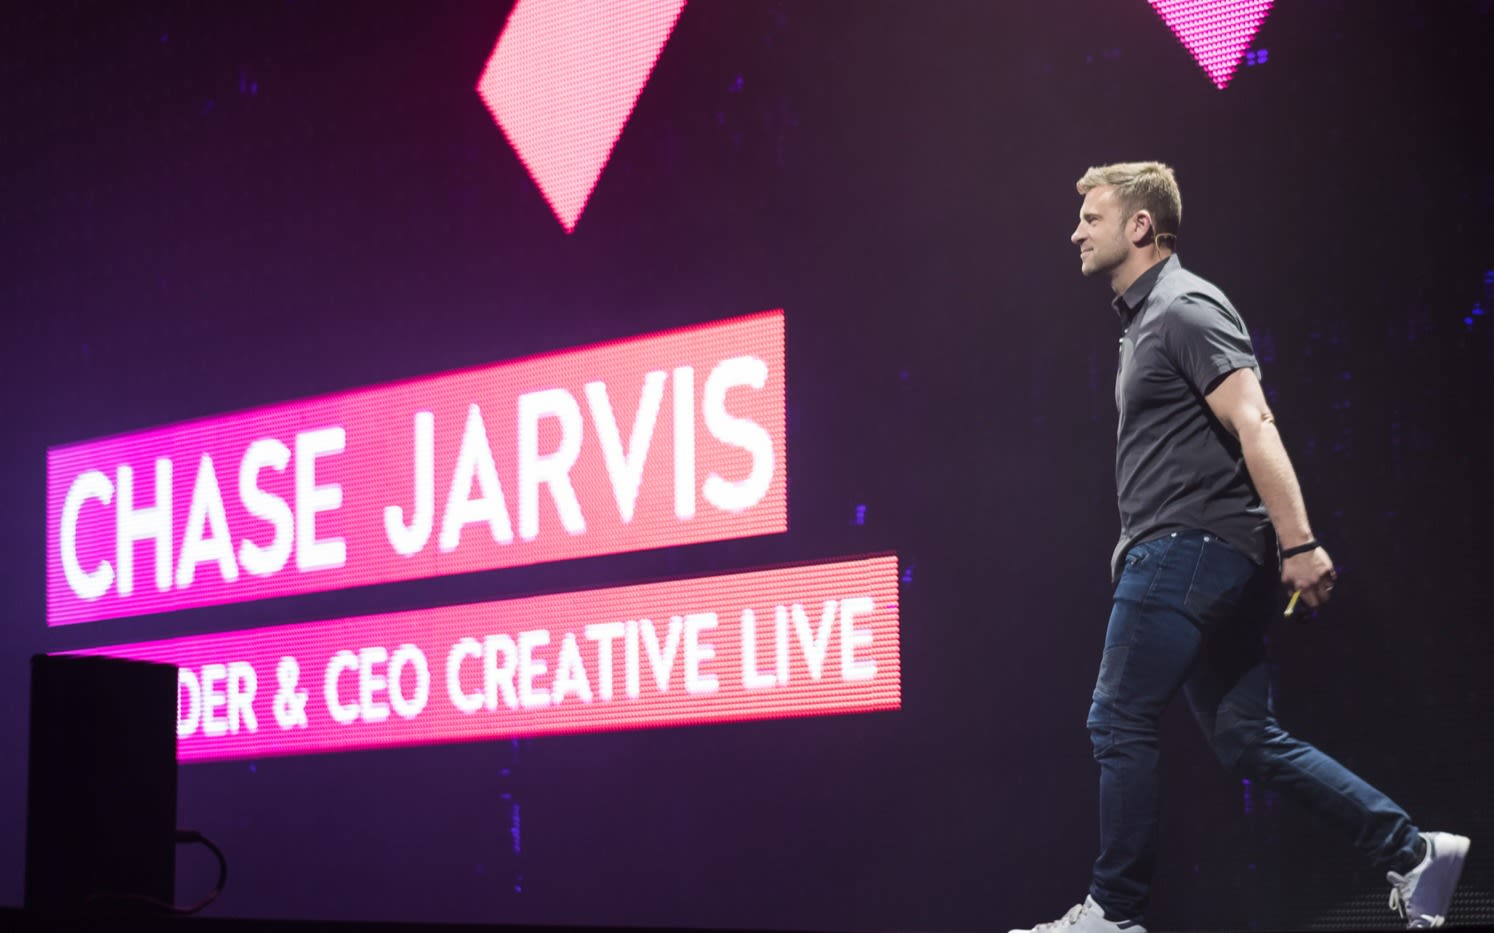 Chase Jarvis walking on stage with bright pink signs announcing his name and title